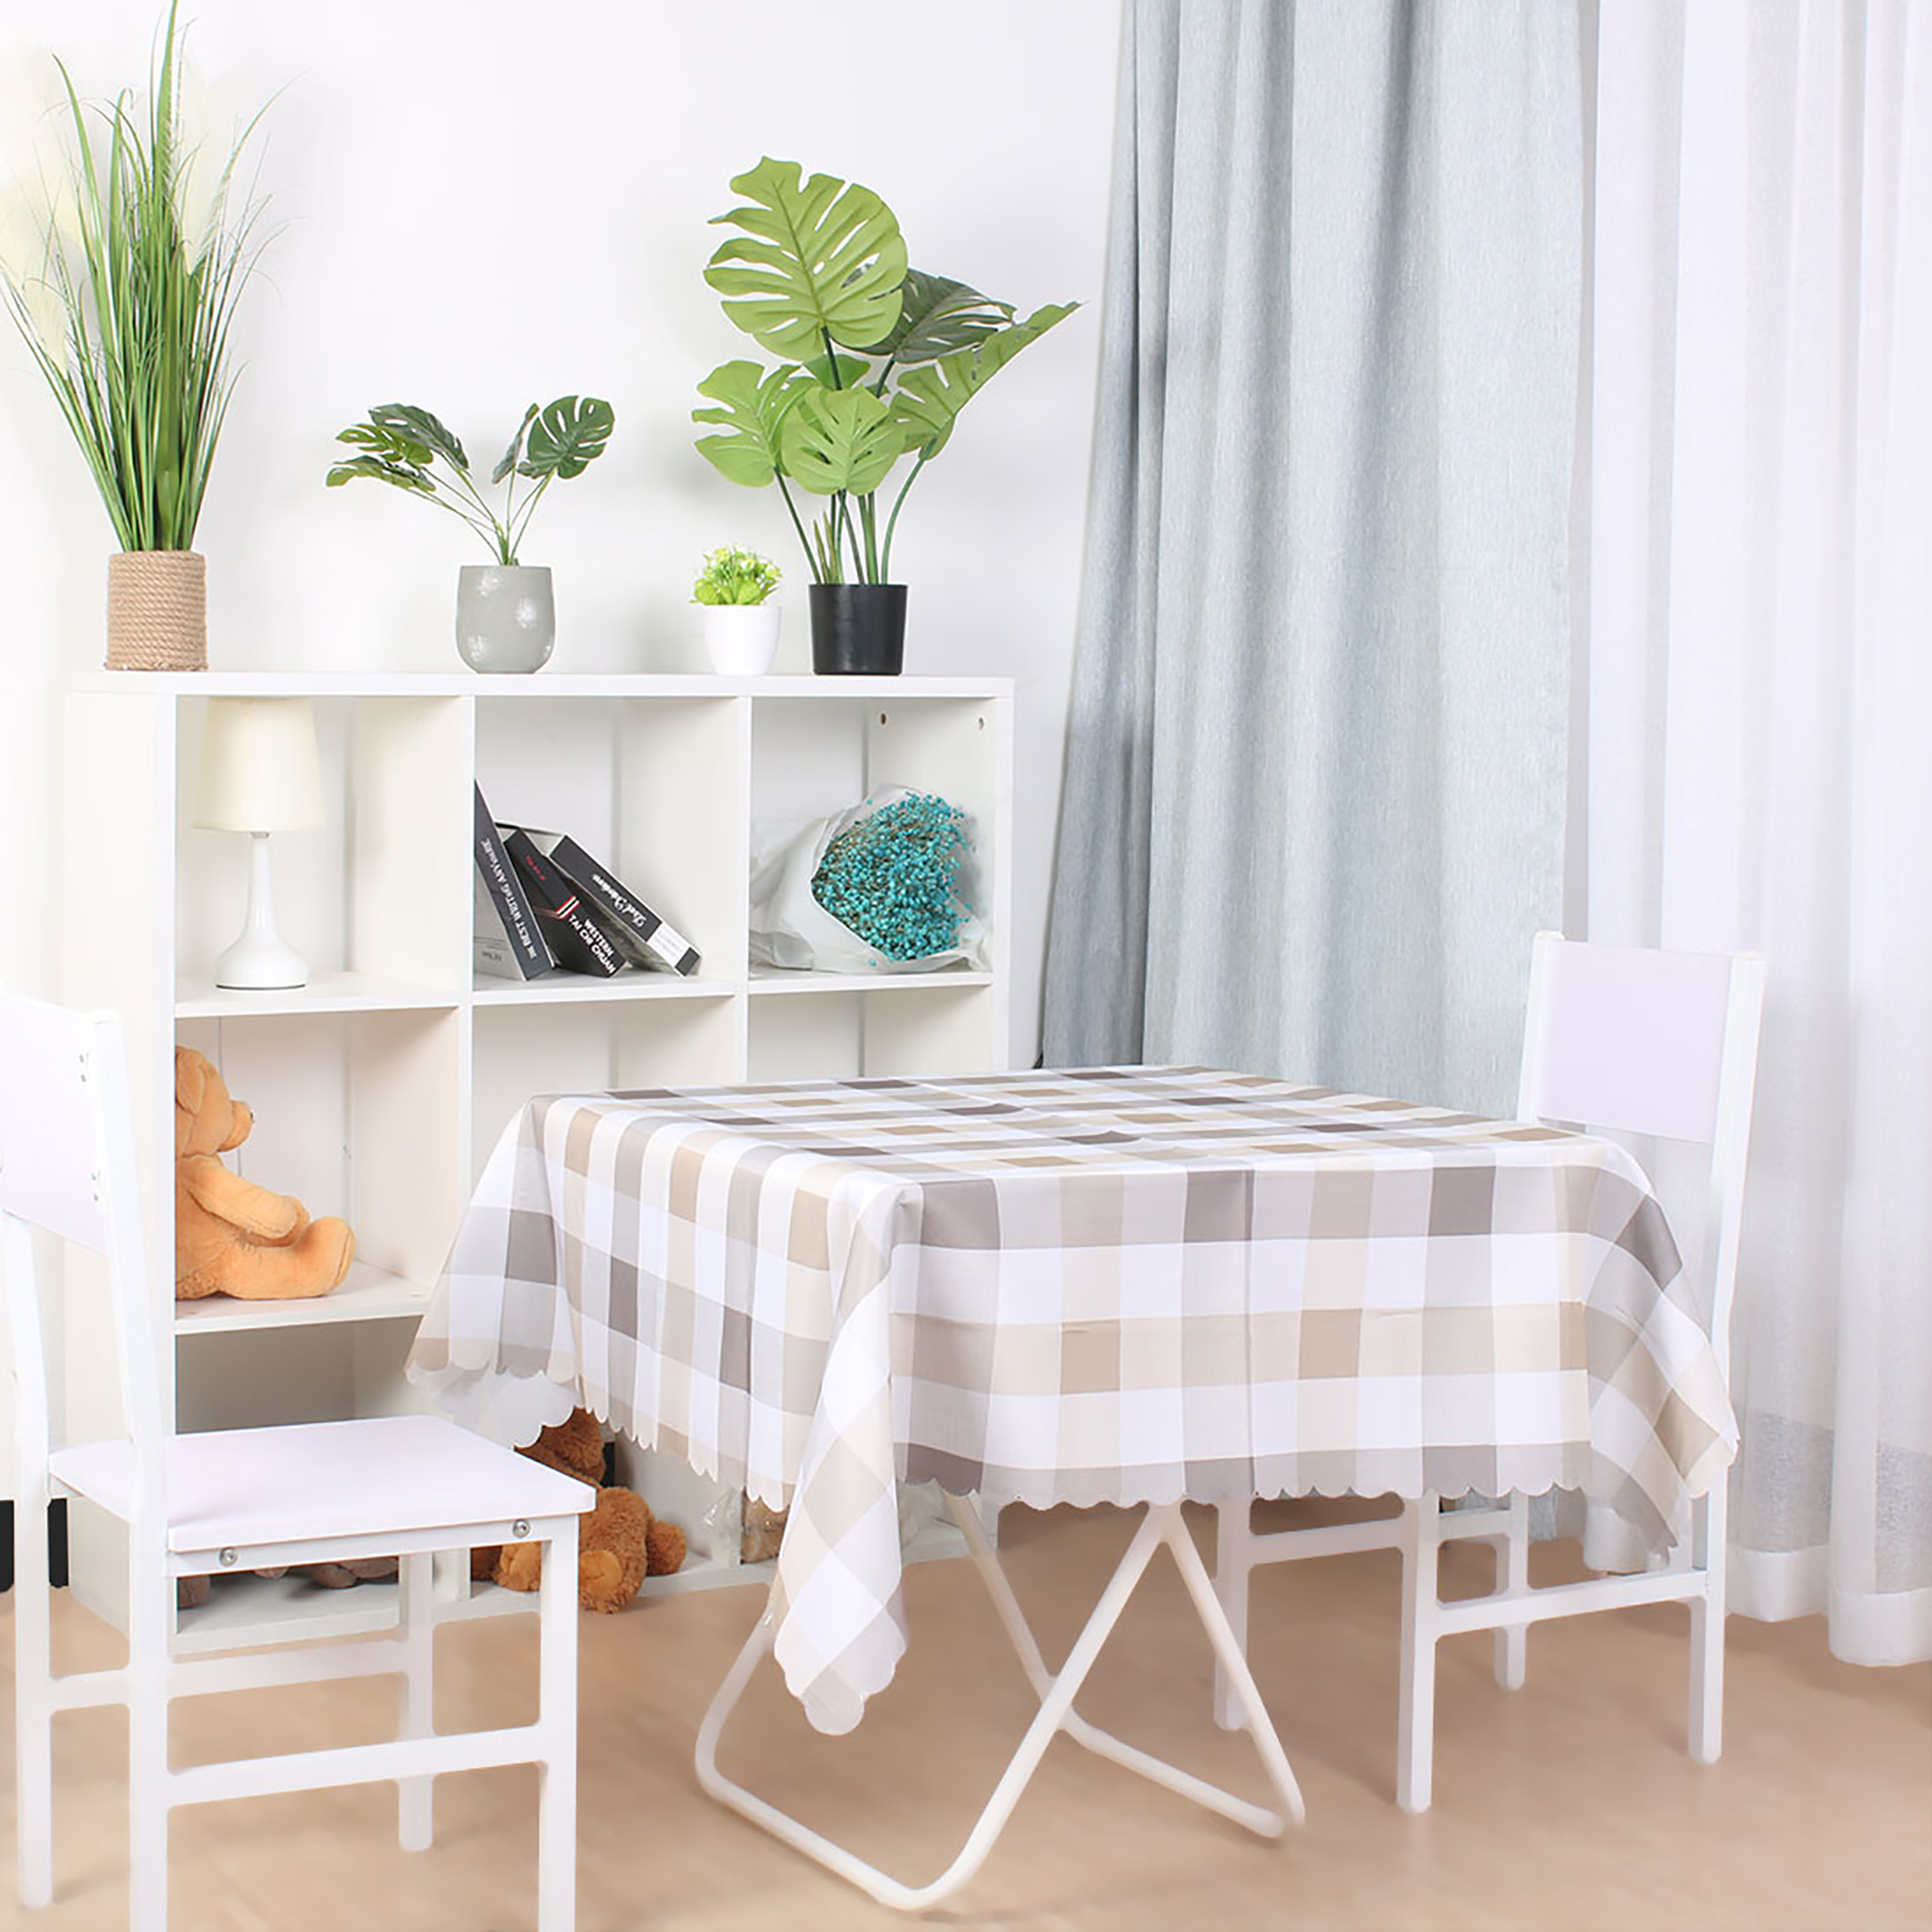 """Plaid Pattern Soft Tablecloths Cotton-linen Table Cover Kitchen for Party Wedding 55"""" x 55"""", #4"""